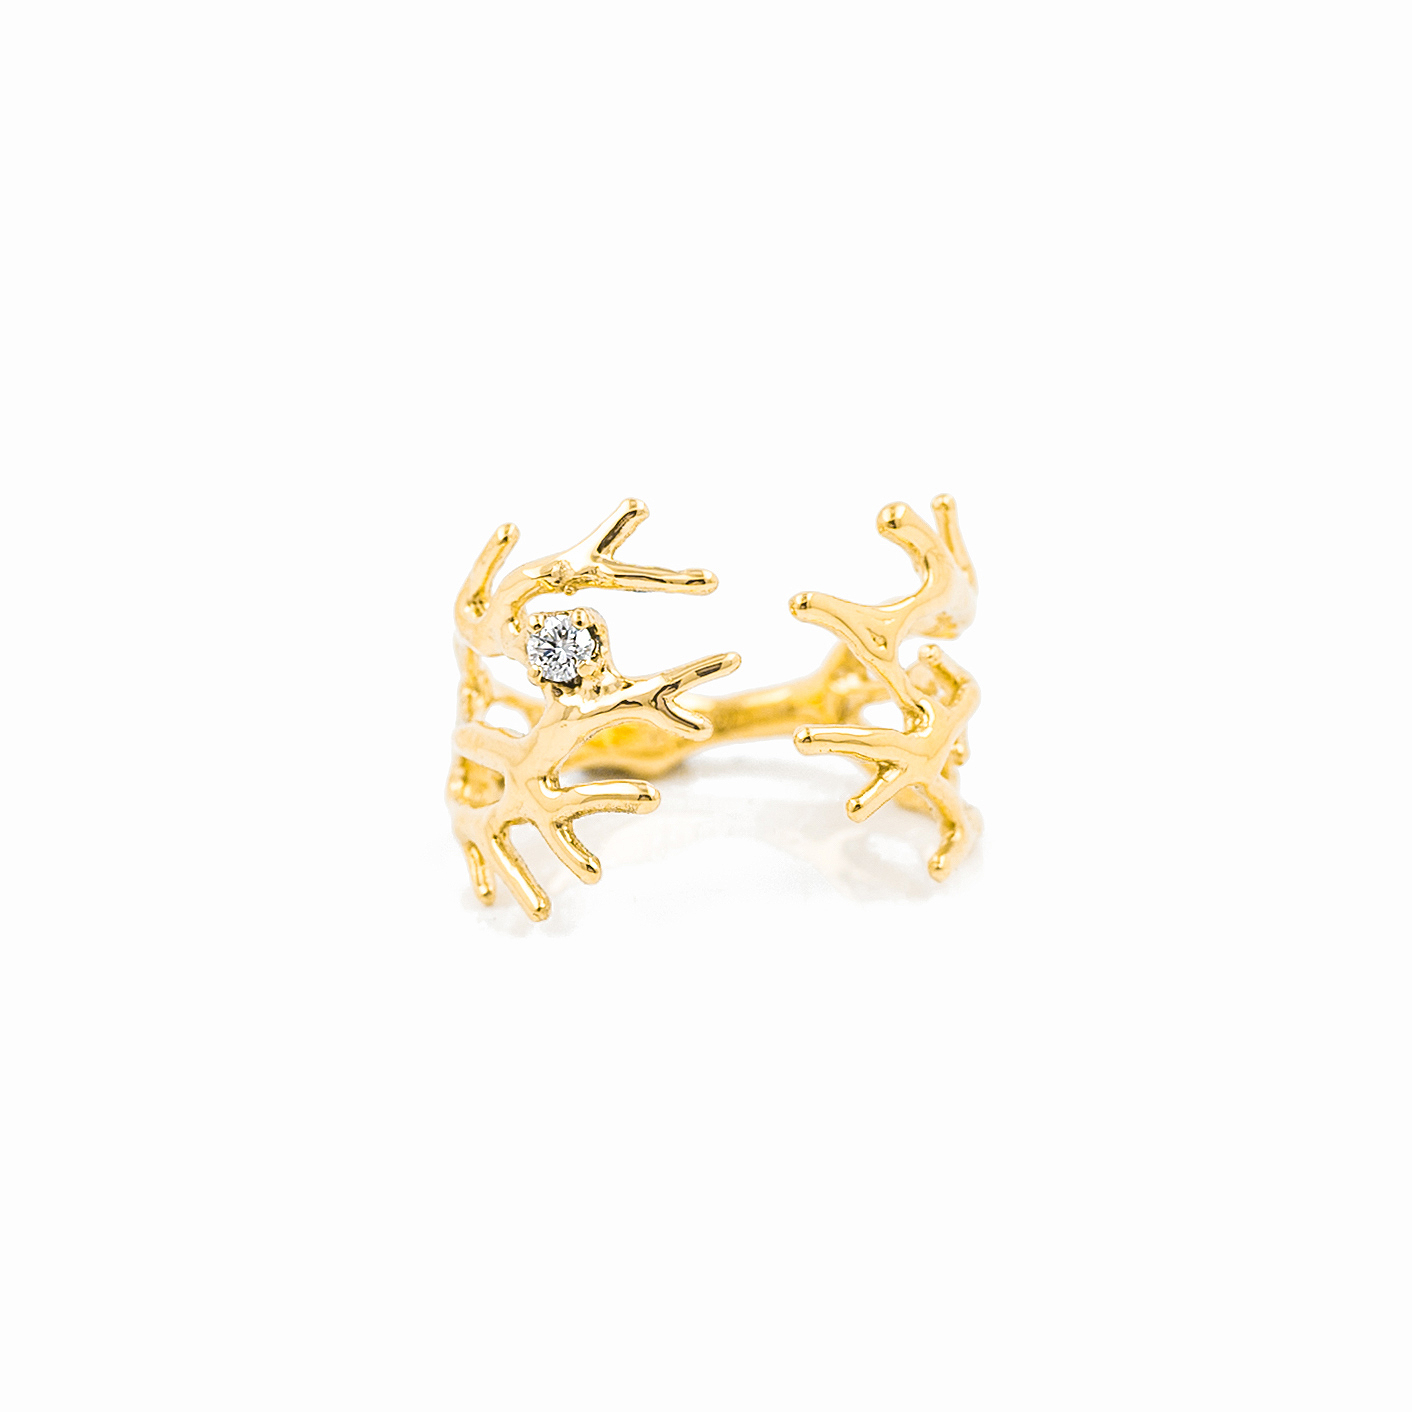 Dendrite Ring | 18ct yellow gold, white diamond.